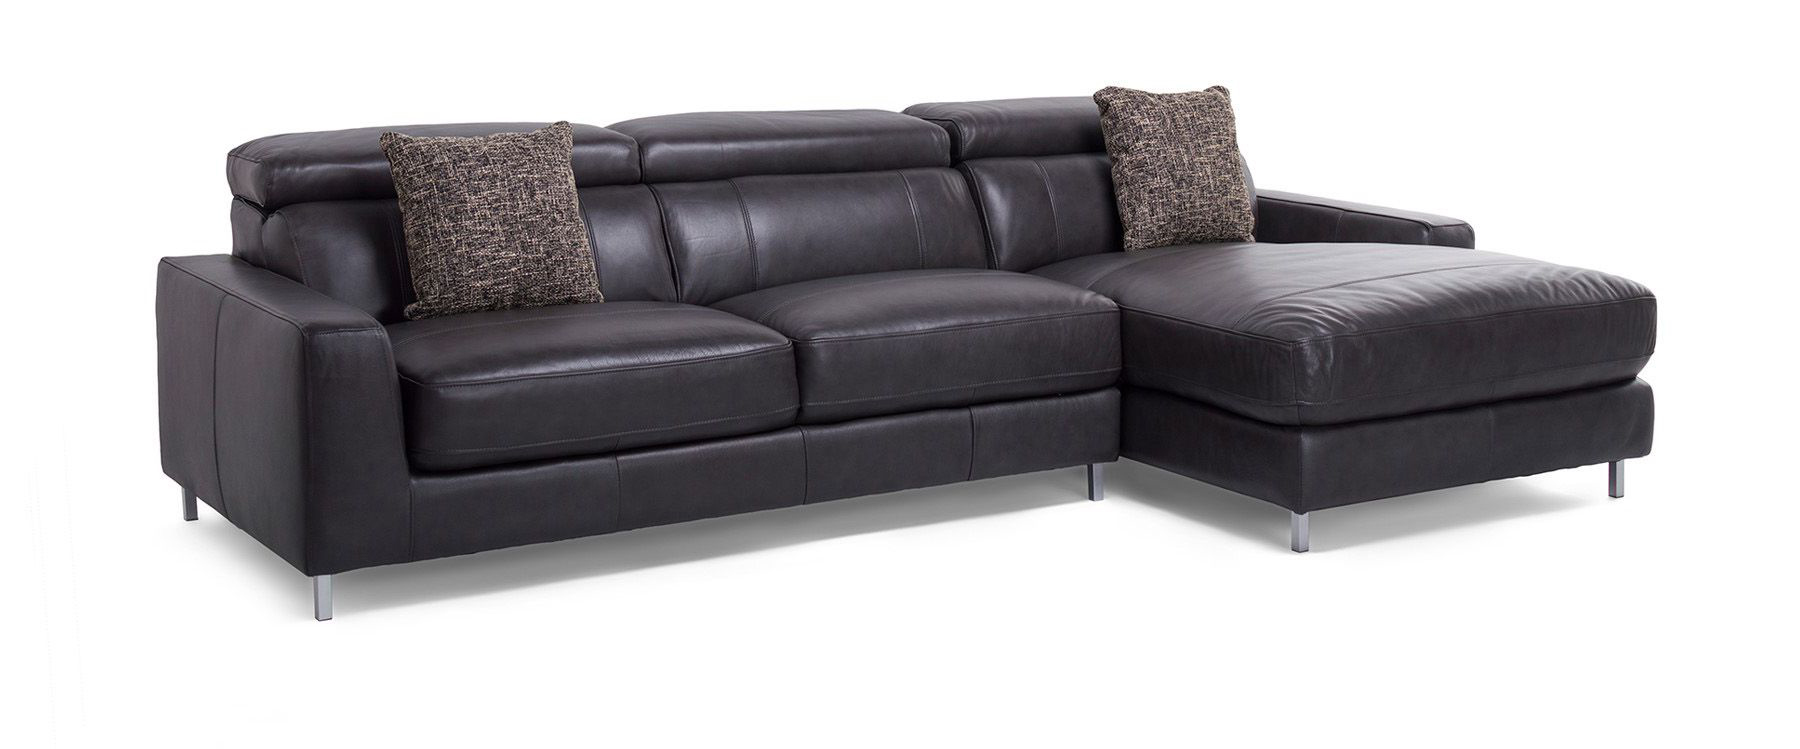 Leather Sofas Northern Ireland Www Redglobalmx Org